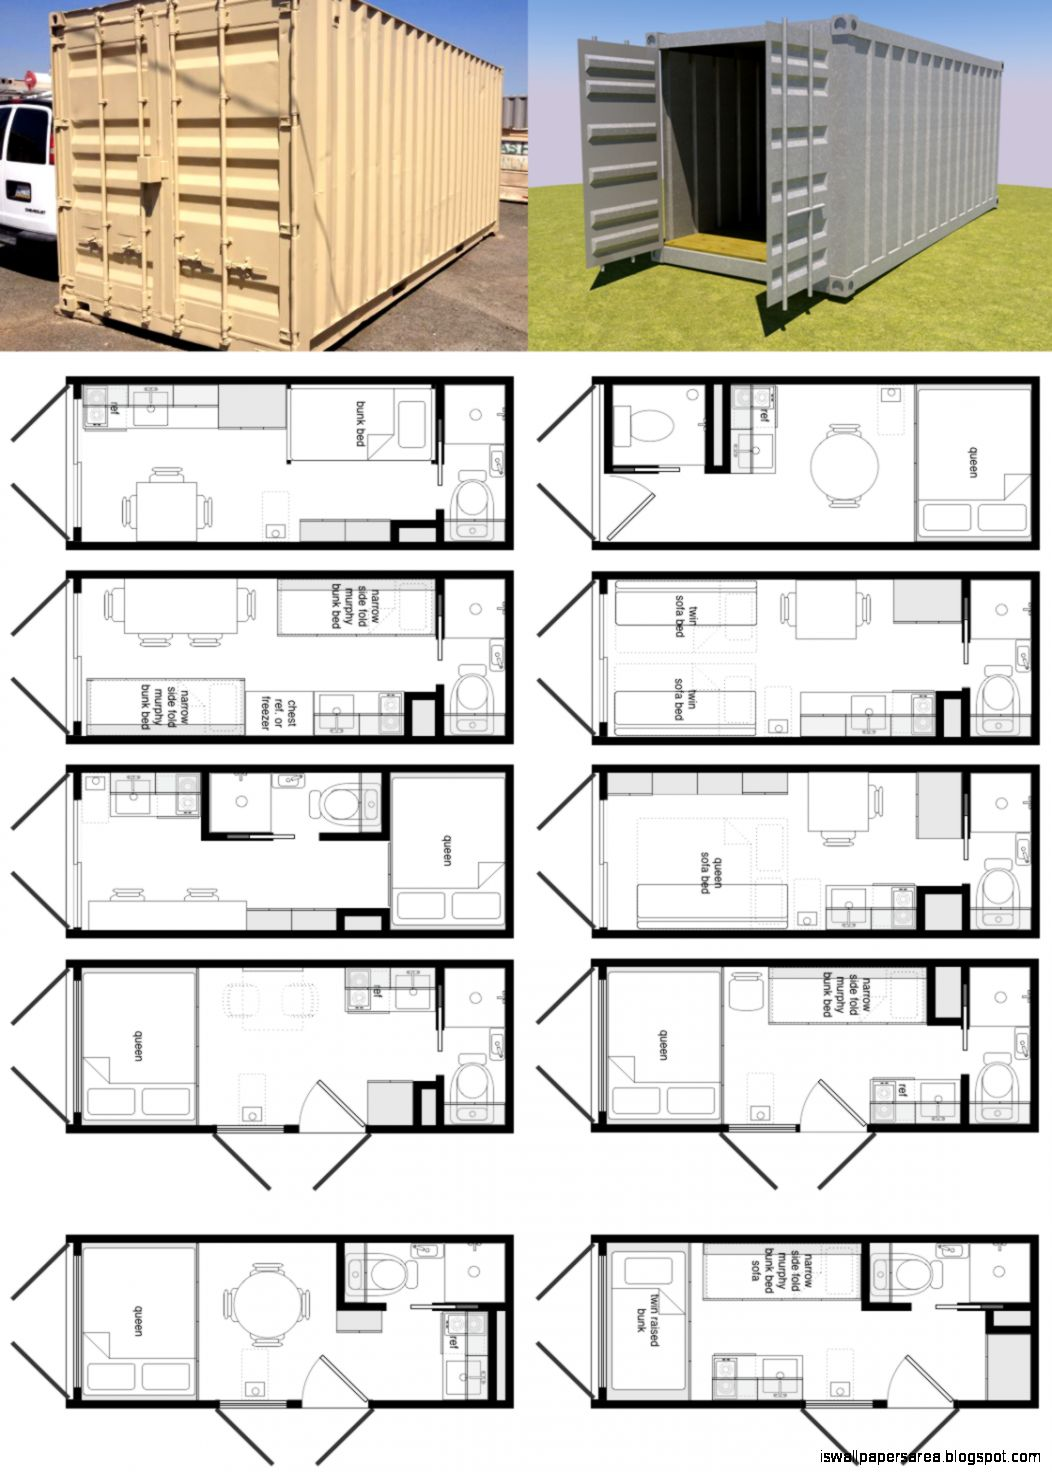 Container home floor plans designs wallpapers area - Foot shipping container home ...